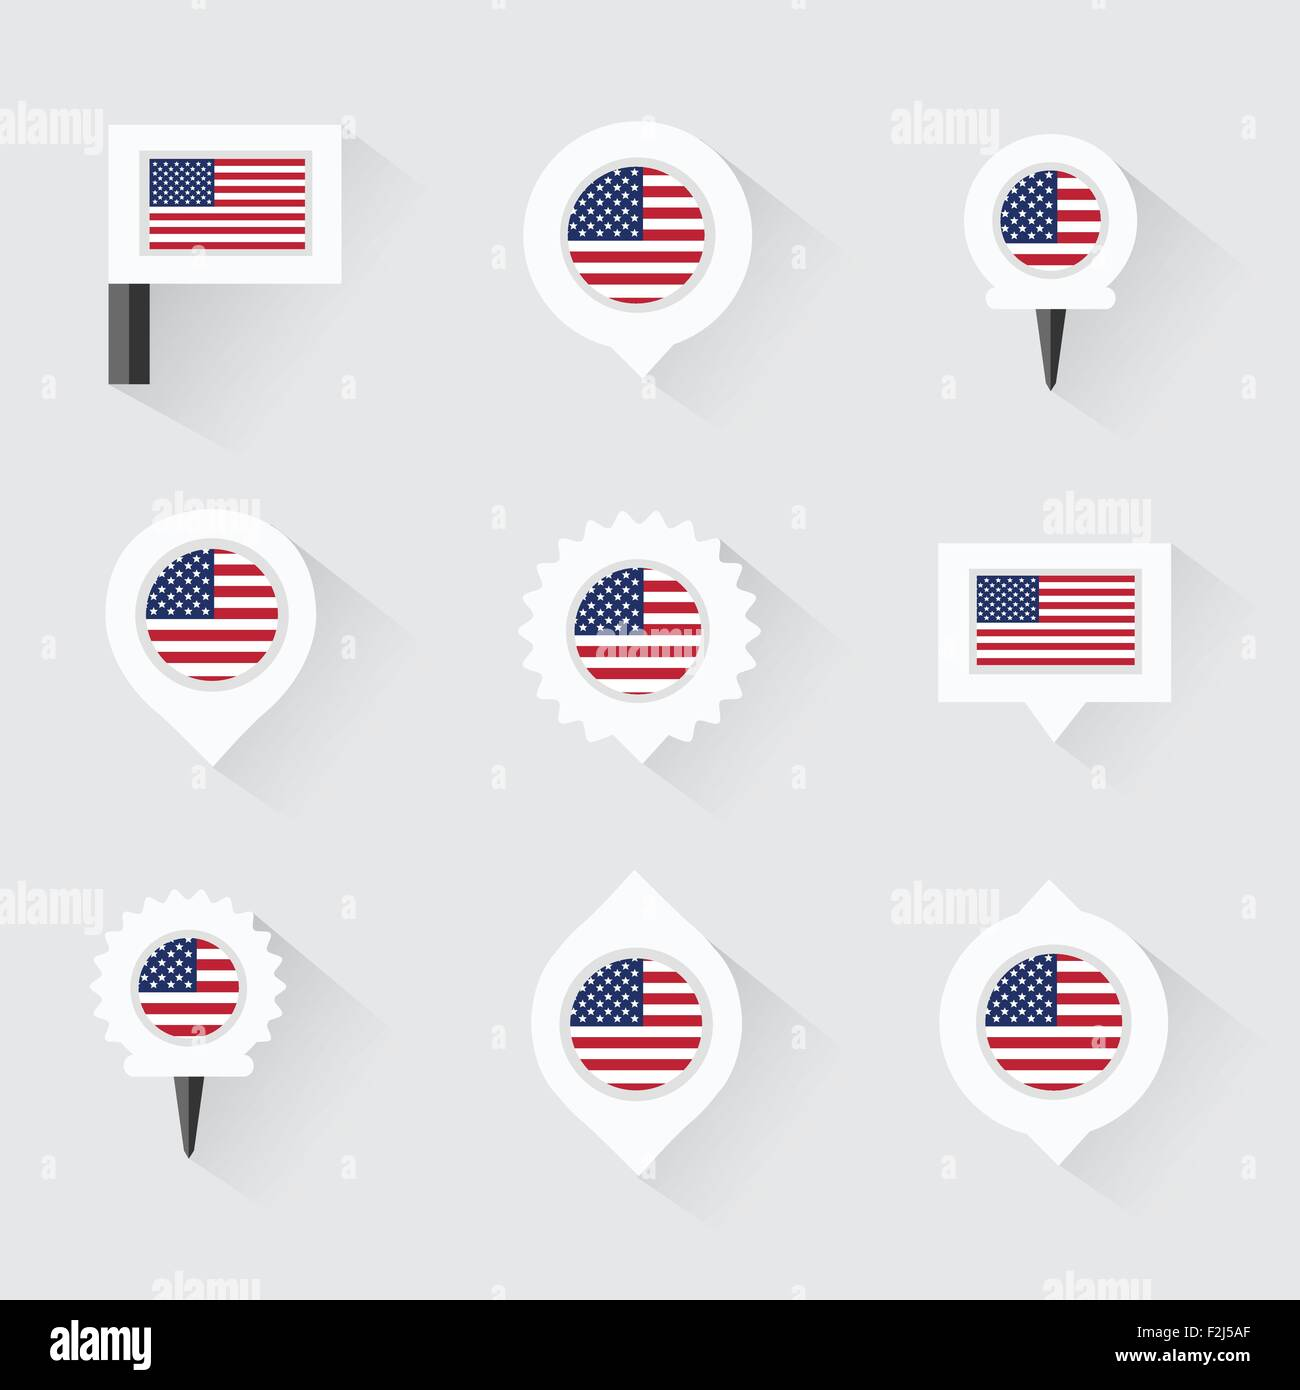 united states of american flag and pins for infographic and map design